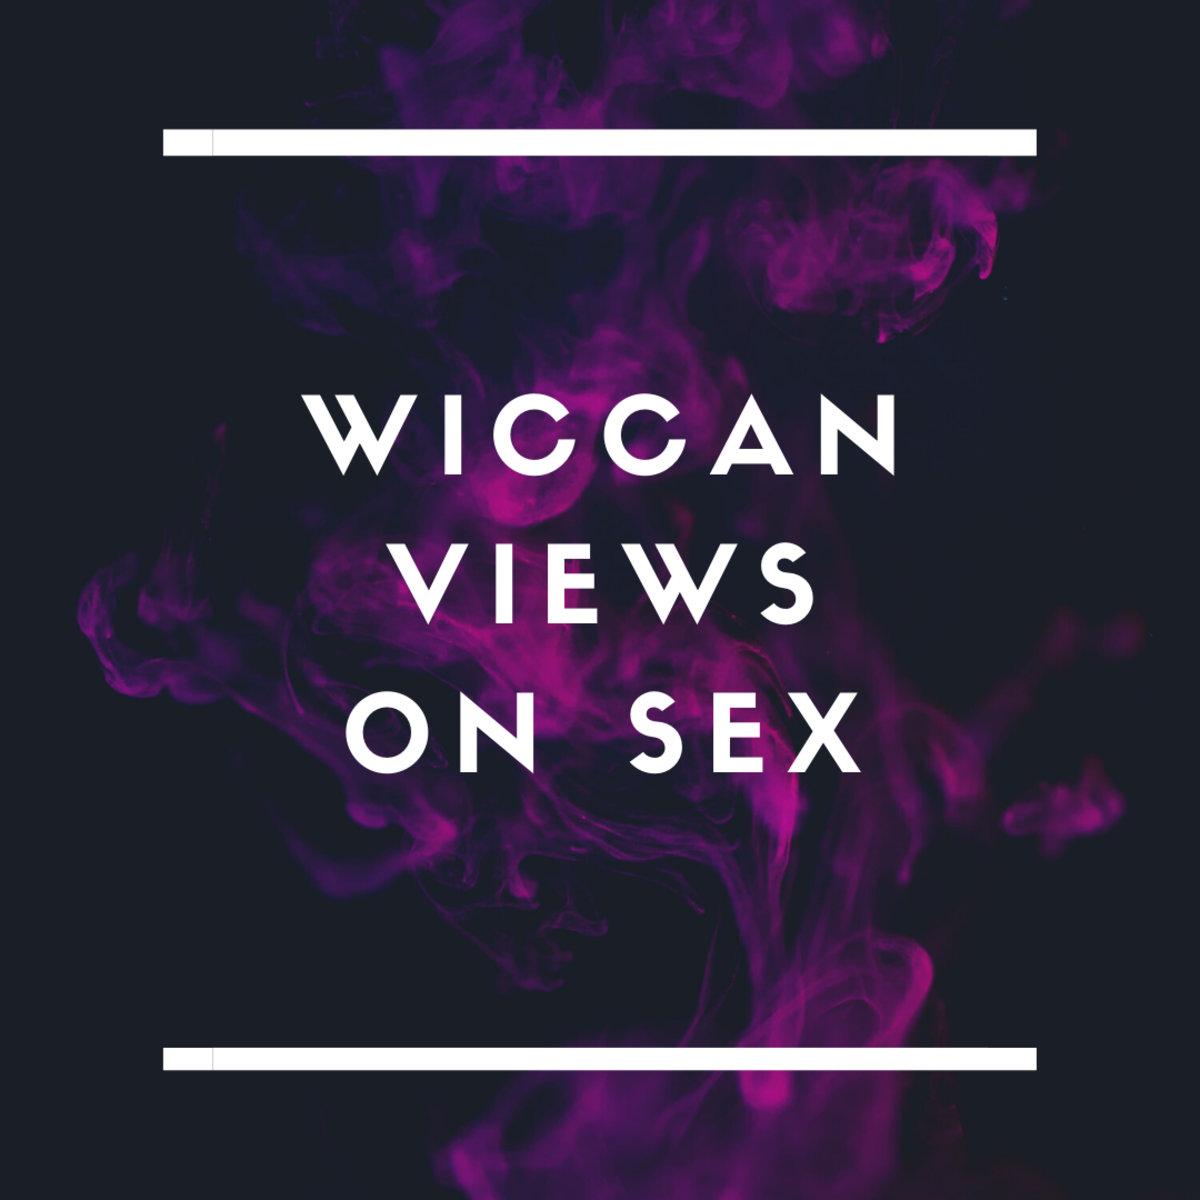 Wiccan Views on Sex